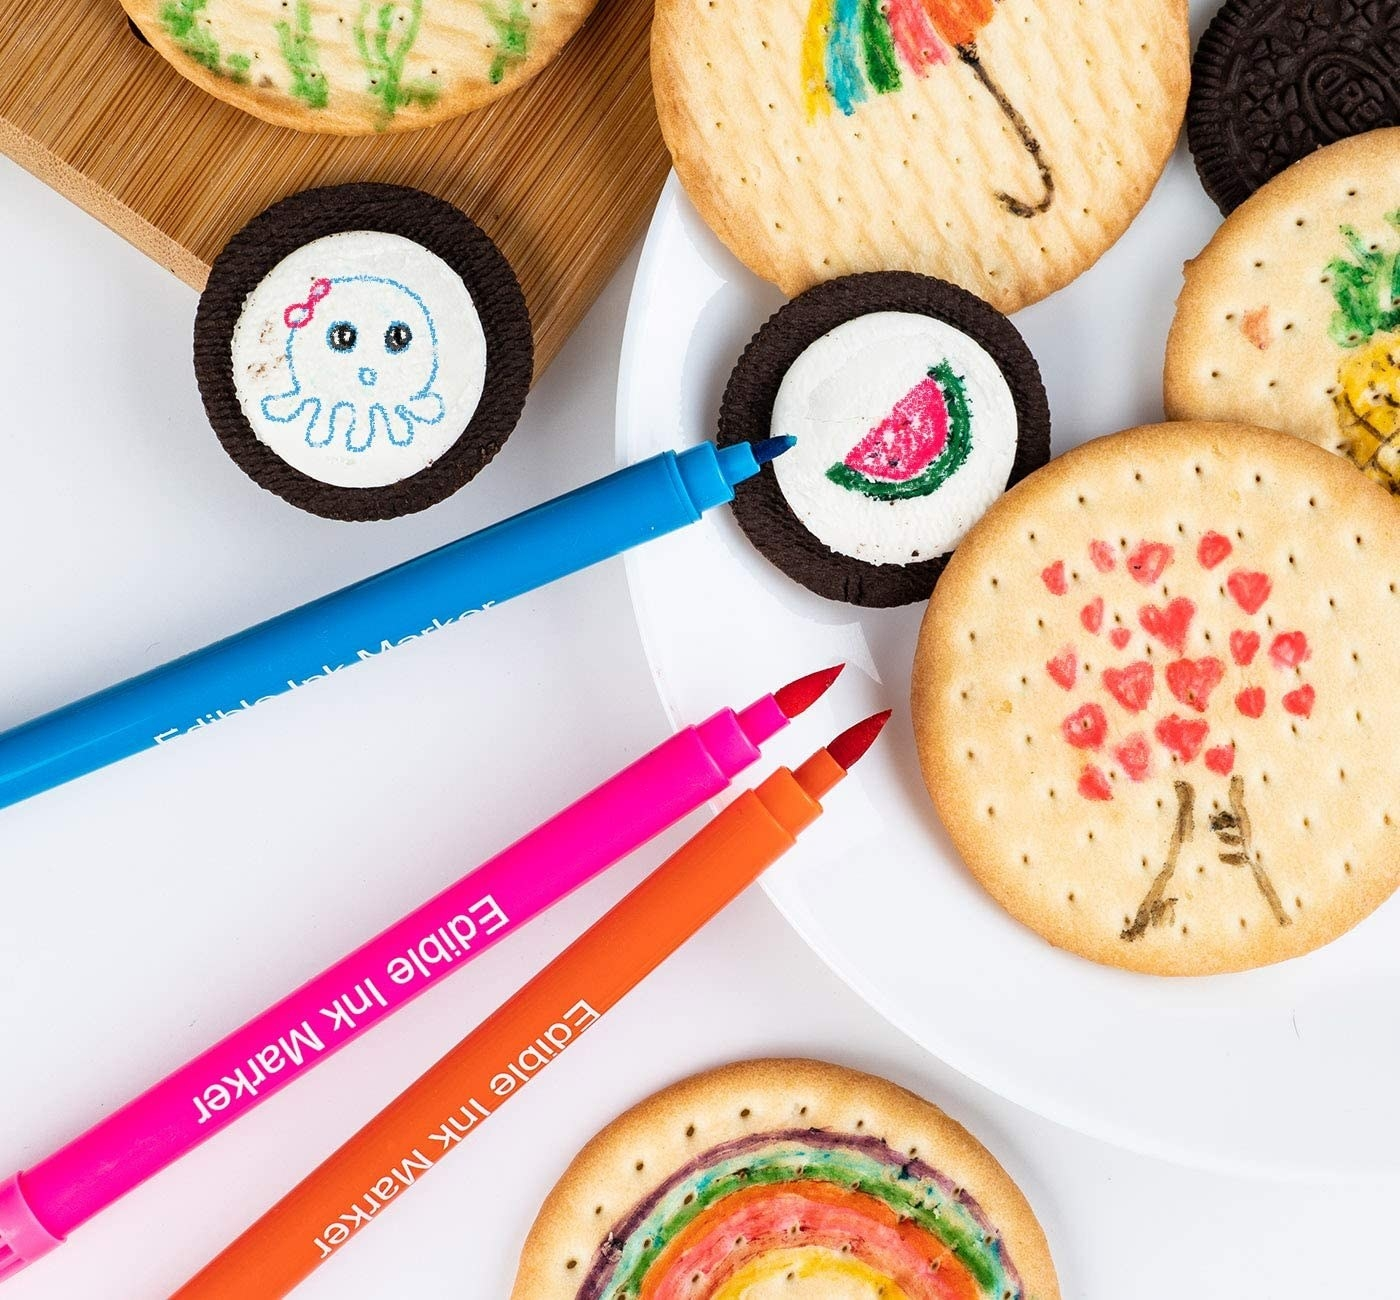 The pens next to Oreos and crackers with doodles on them